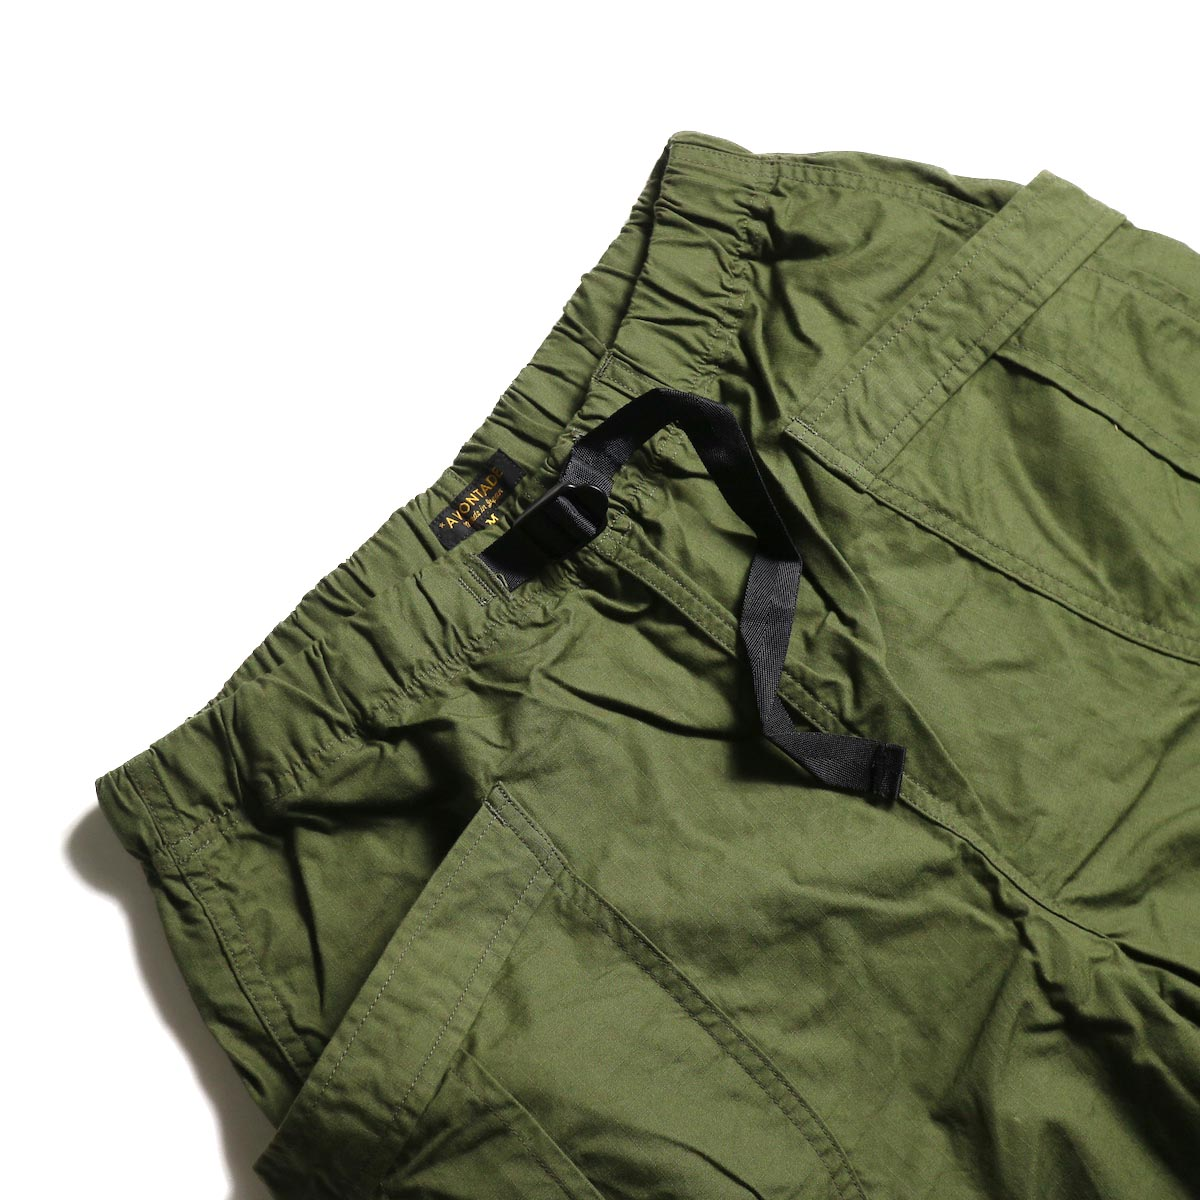 A VONTADE / Fatigue Shorts (Olive) ウエスト